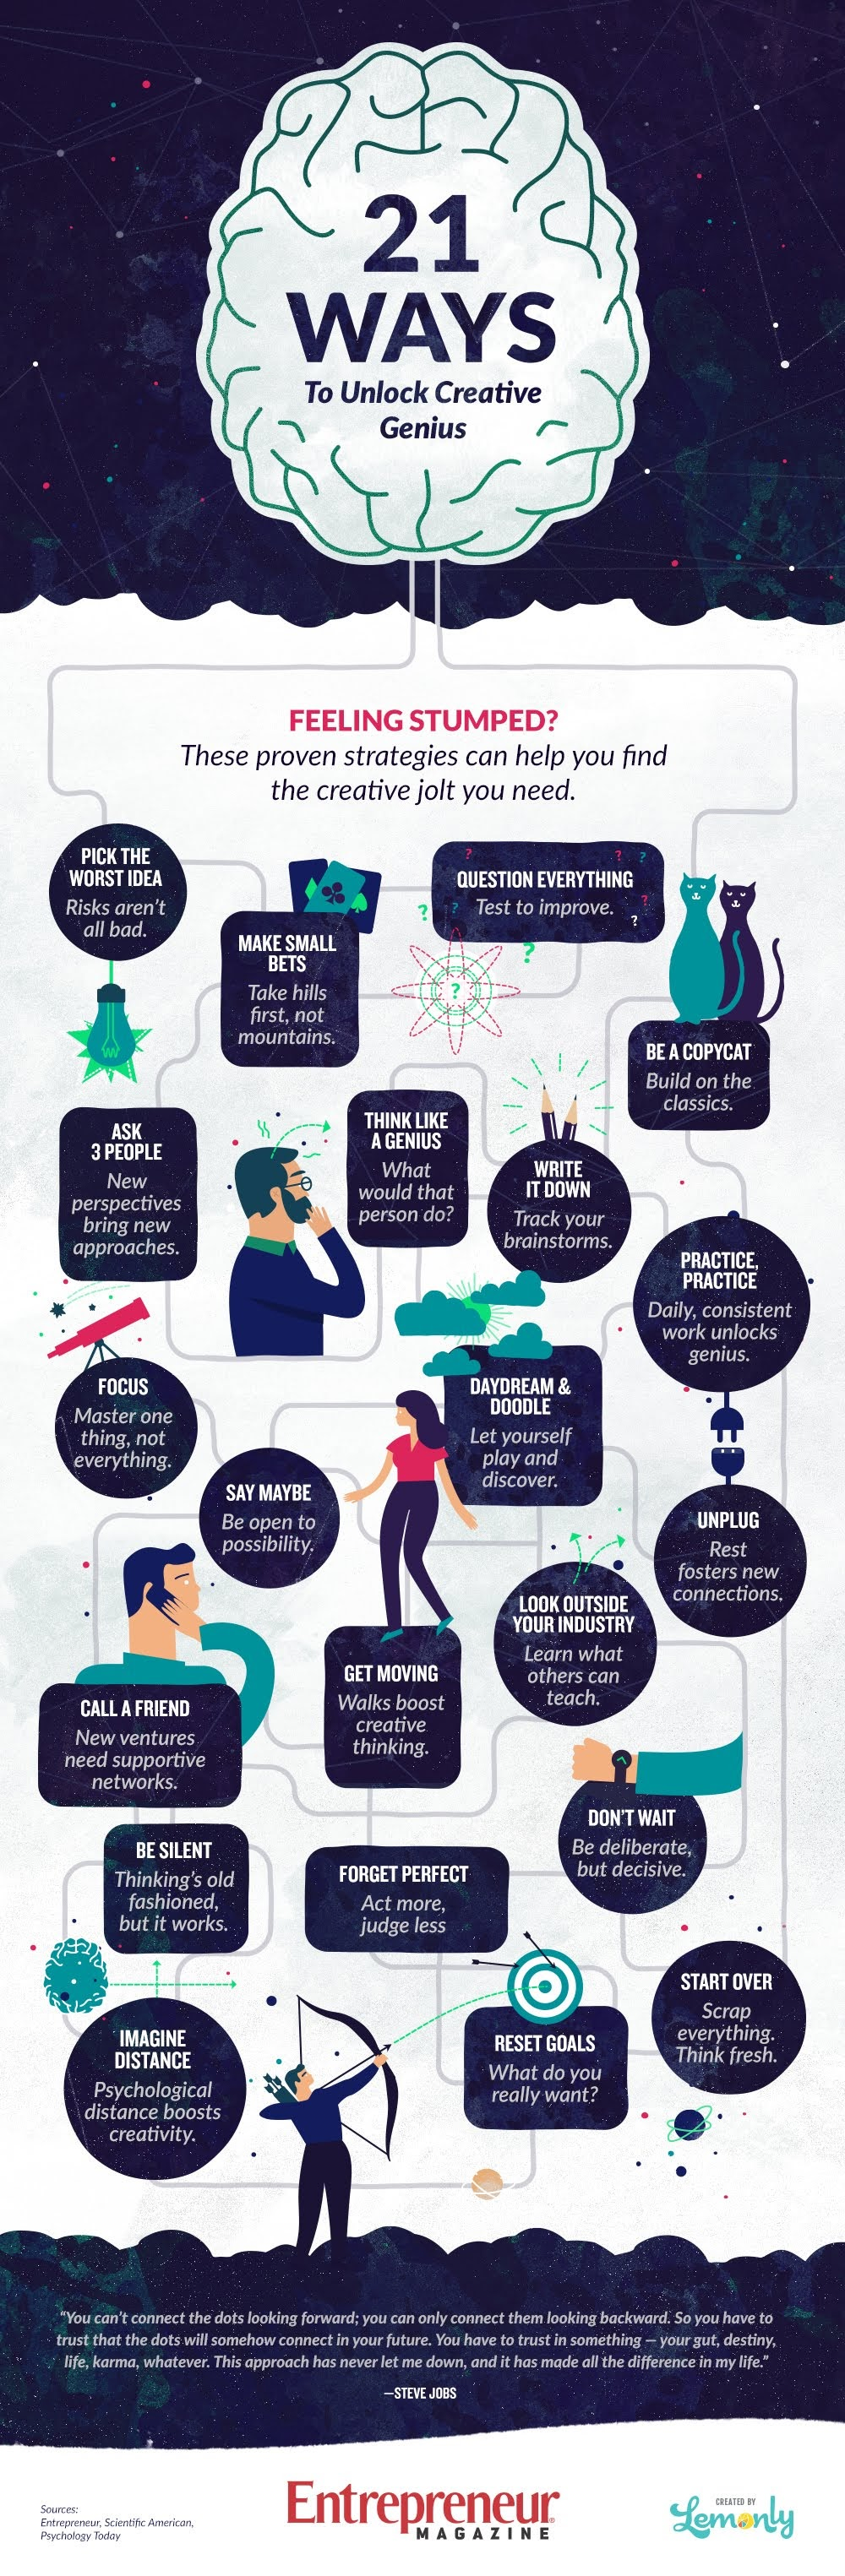 21 ways to unlock creative genius #infographic